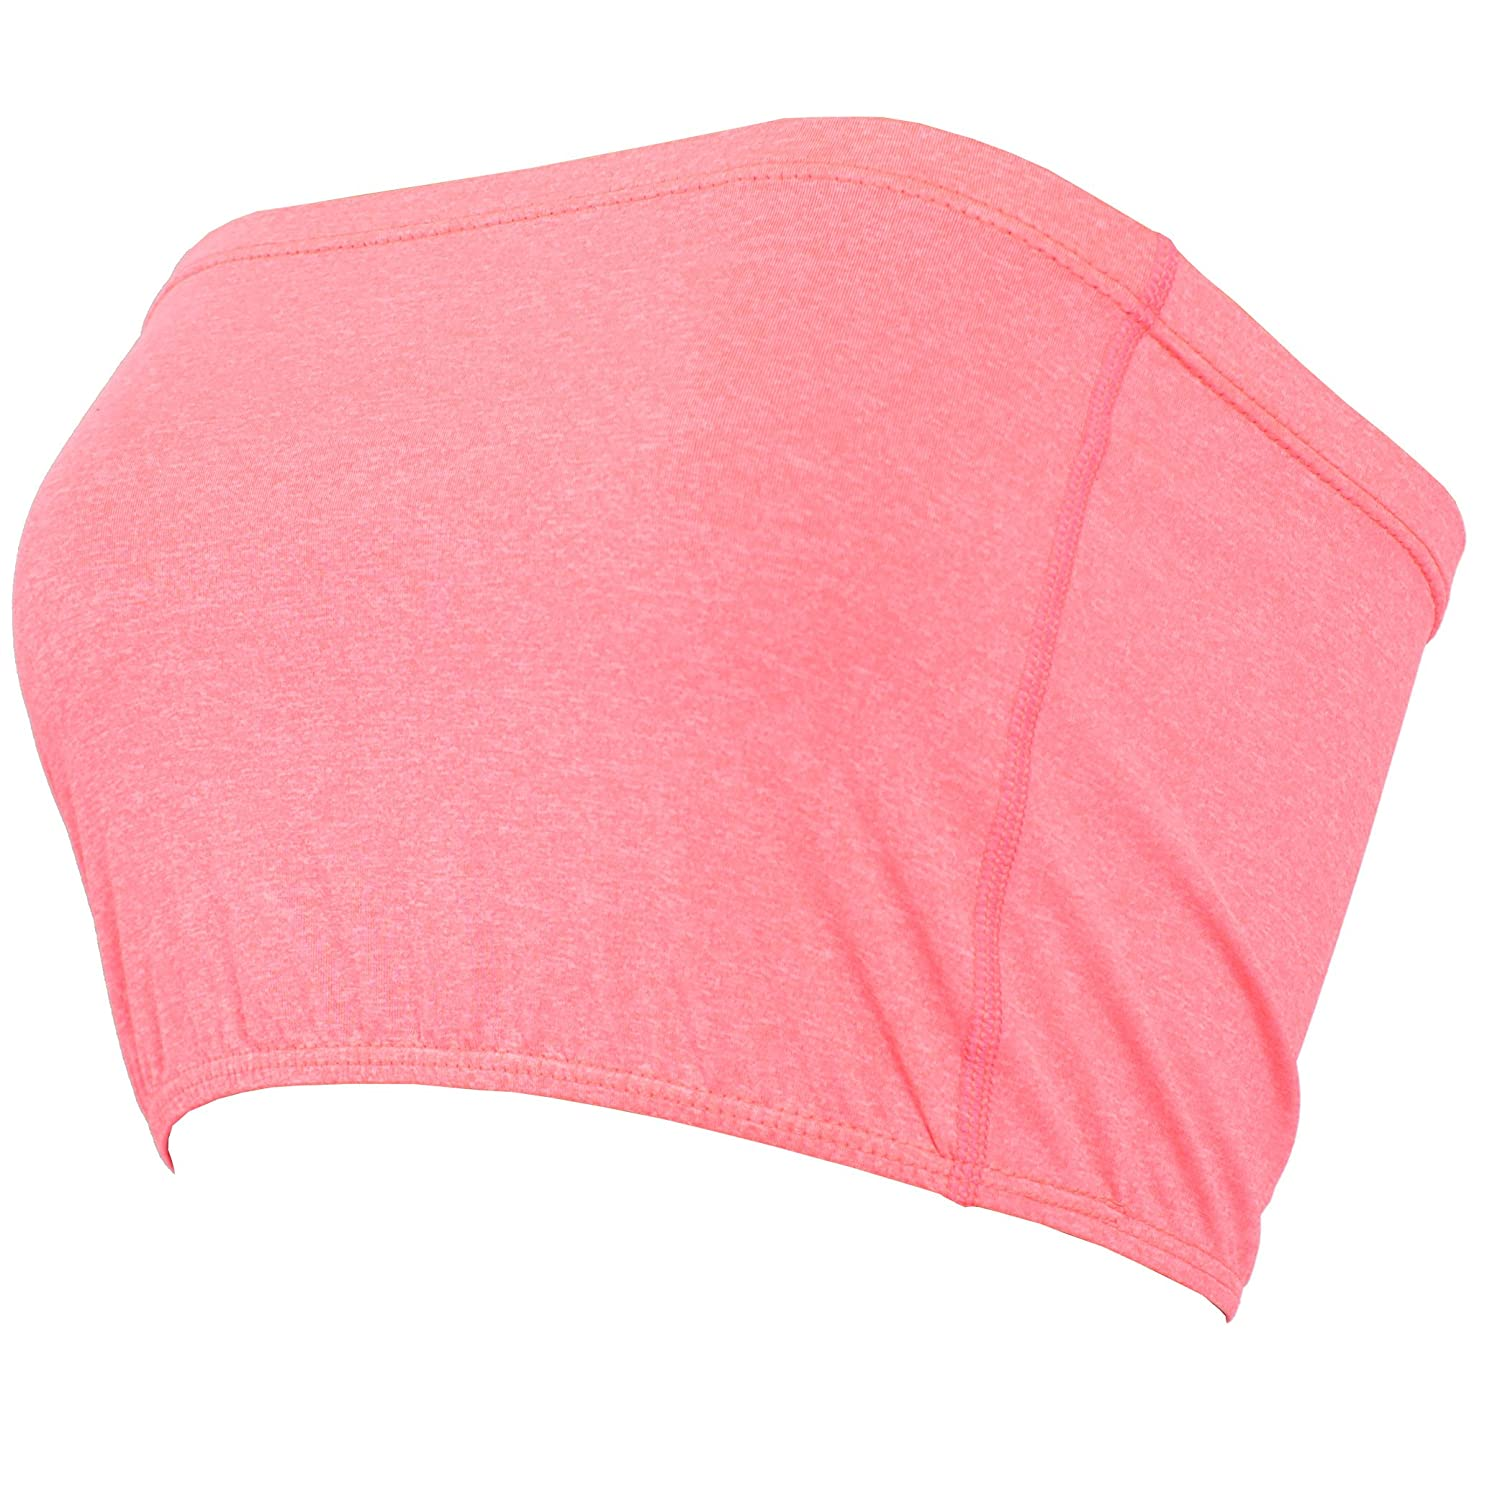 ... XPRIN T100 Series Basic Layering Seamless Bandeau Tube top Crop Bra  Strapless (Non-Padded 5a380d582f2a